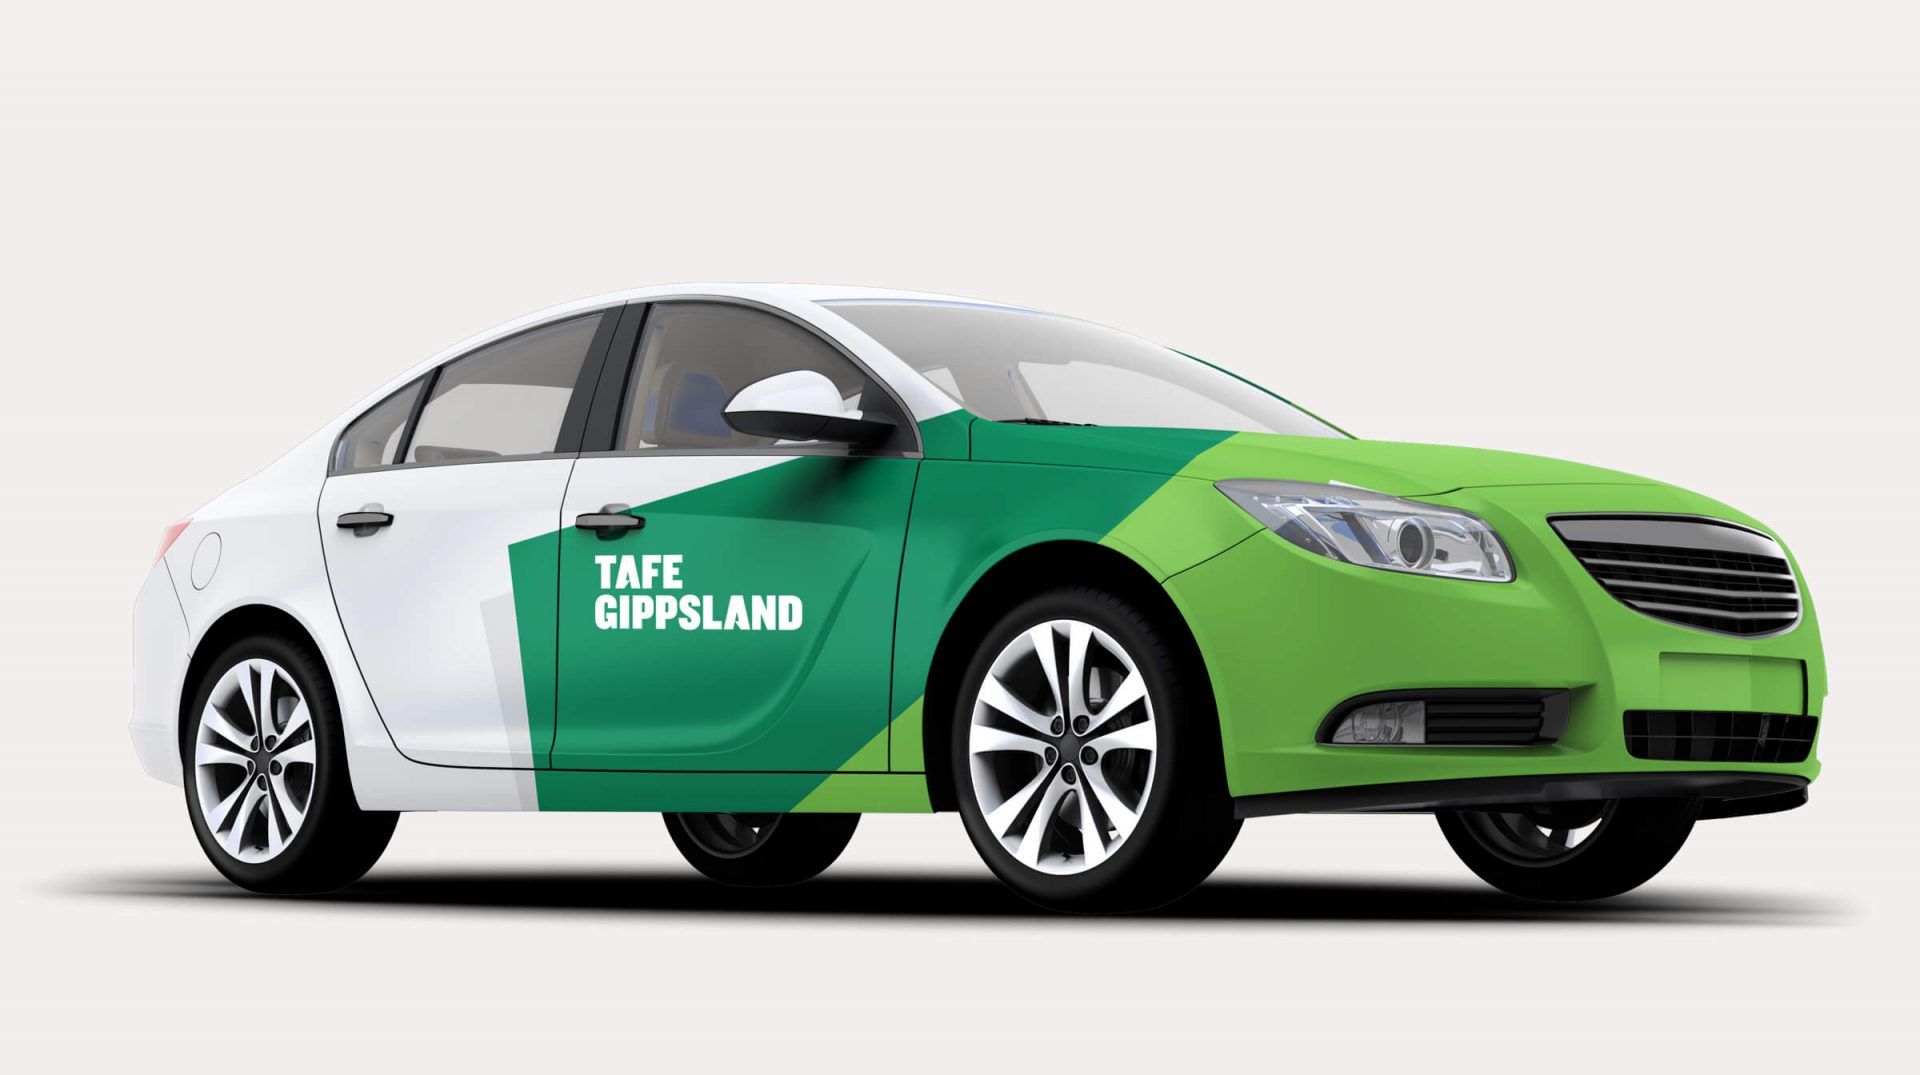 A sedan with the front wrapped in dark and light green, and the TAFE logo on the side